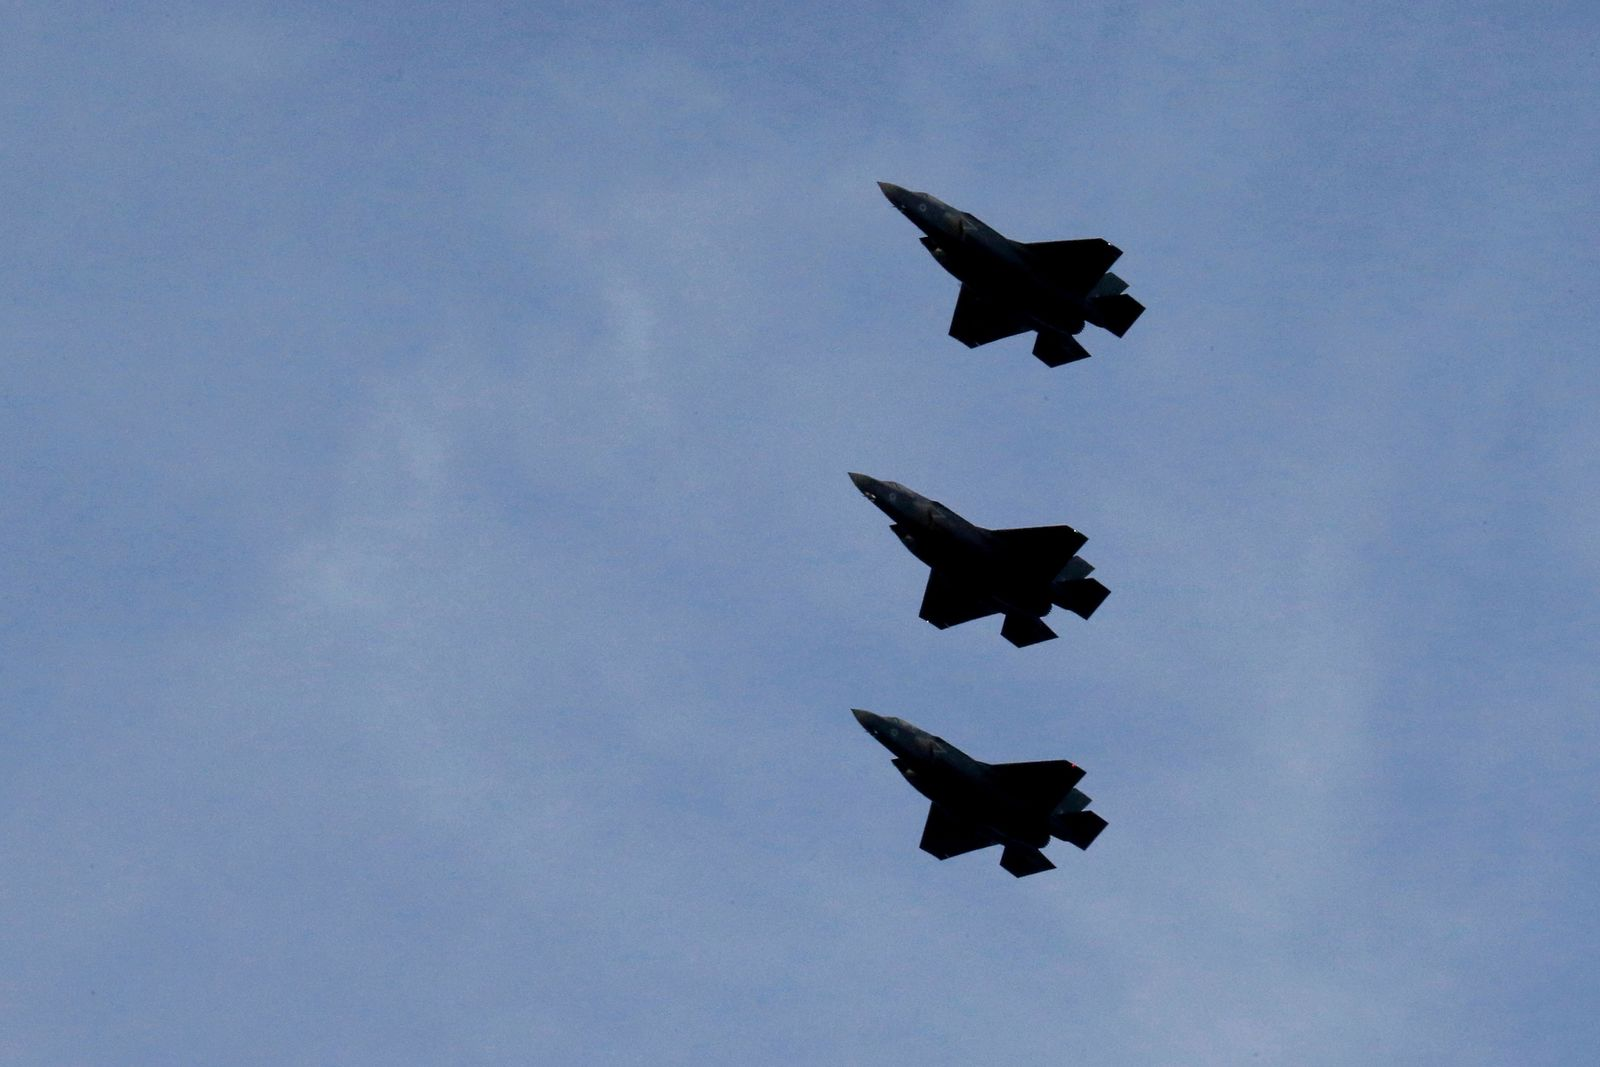 FILE - In this Tuesday, May 21, 2019 file photo, F-35B aircrafts fly over the Akrotiri Royal air forces base before landing, near city of Limassol, Cyprus. Britain's defense secretary said the country's most advanced military aircraft, the Lightning F-35B, that is undergoing training at a British air base in Cyprus has flown its first missions over Syria and Iraq as part of the ongoing operations against the Islamic State group, in a statement issued Tuesday June 25, 2019. (AP Photo/Petros Karadjias, File)